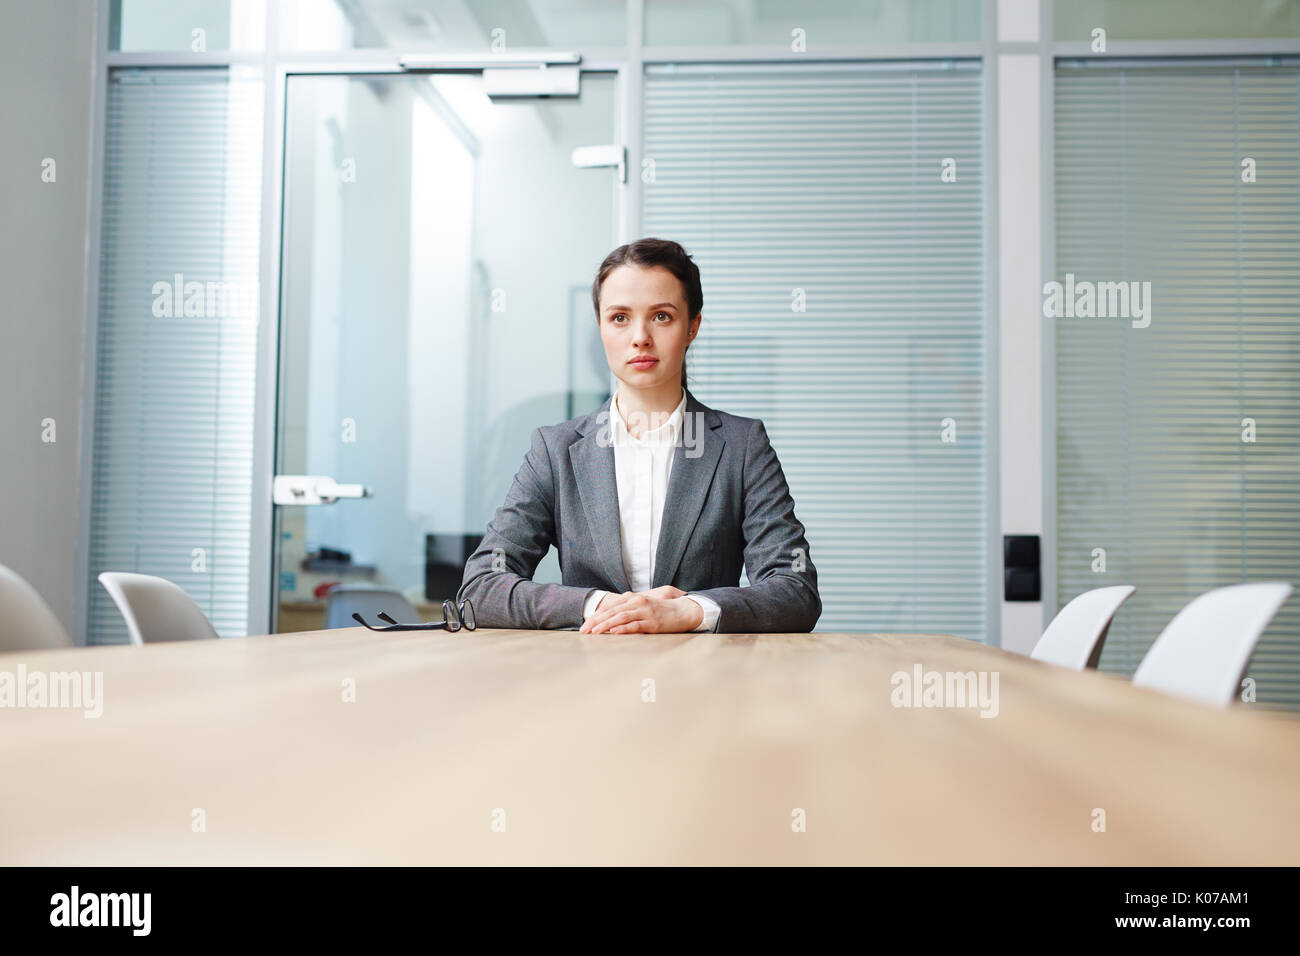 Waiting for interview - Stock Image